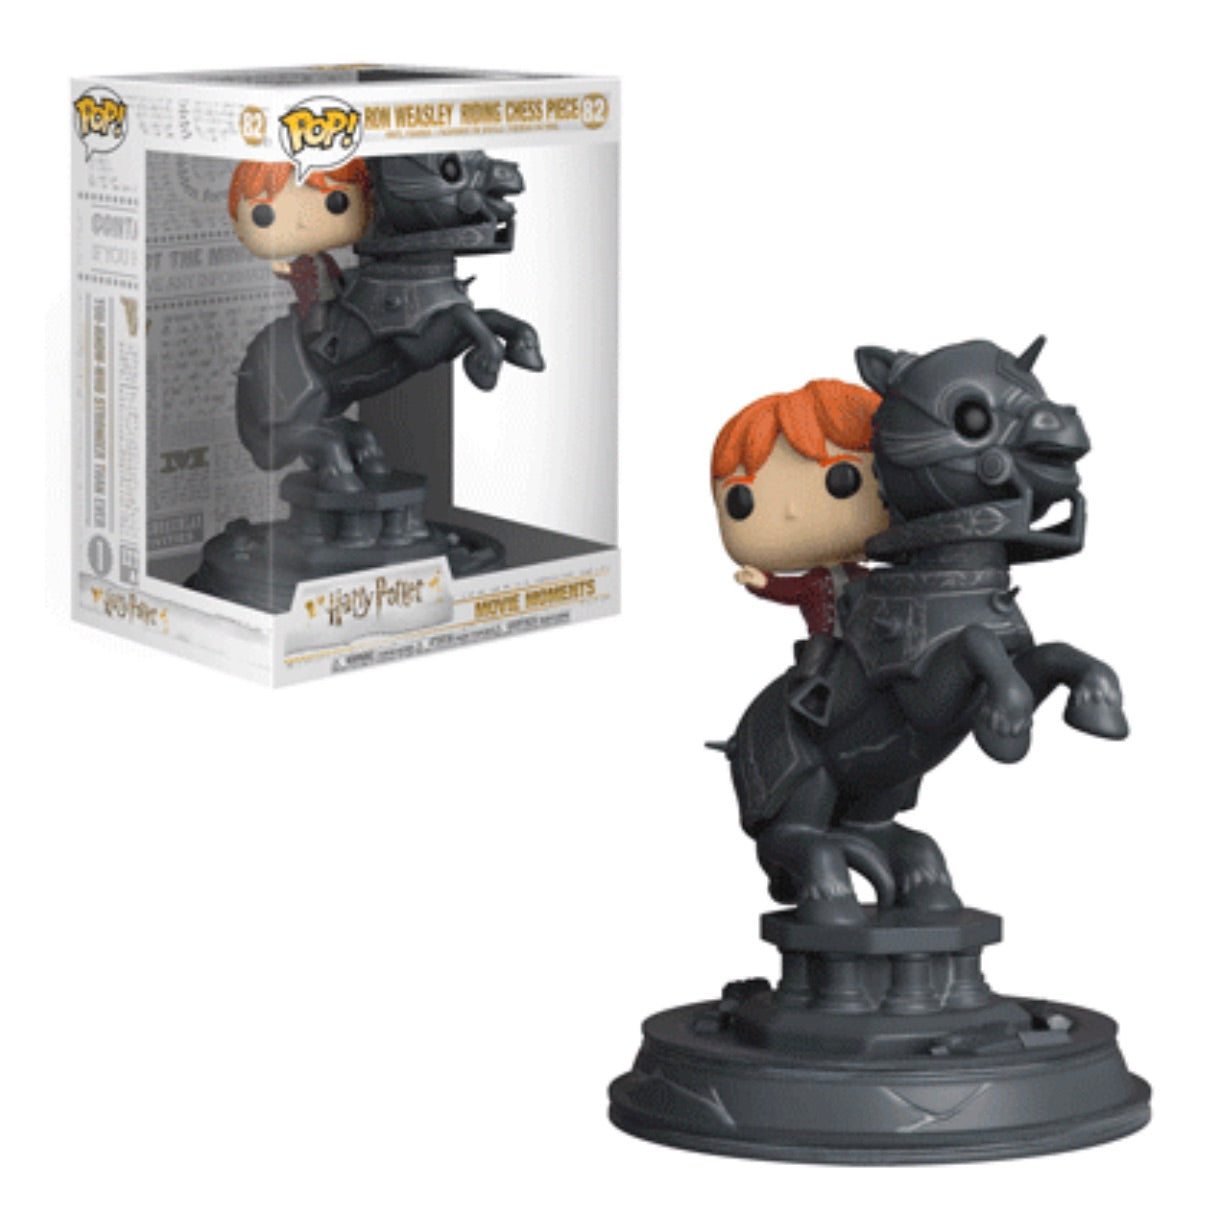 HARRY POTTER FUNKO POP! RON RIDING CHESS PIECE (MOVIE MOMENT)